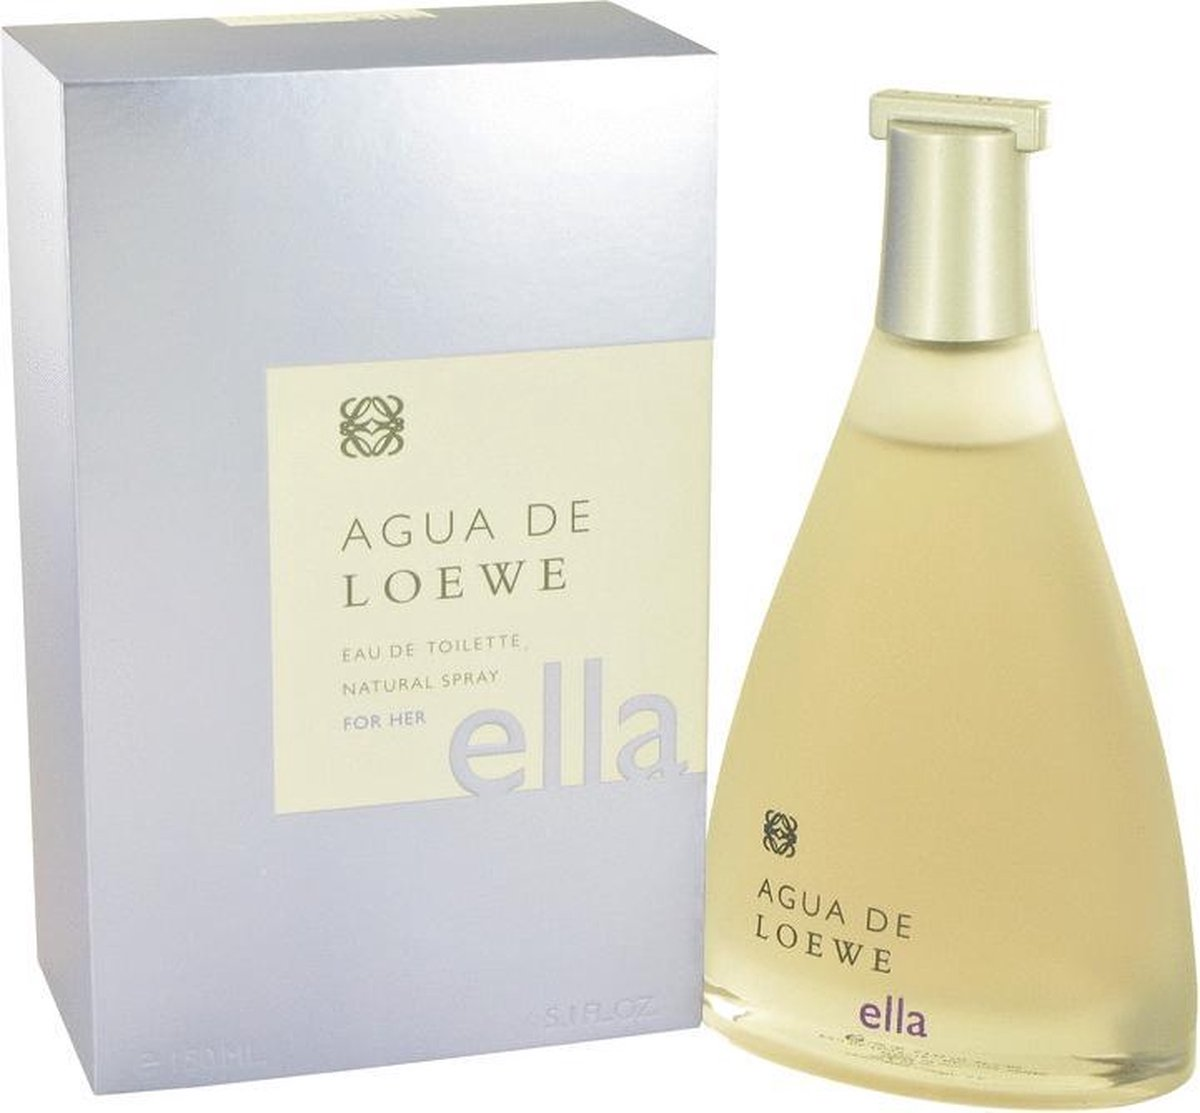 Eau De Toilette Spray 5.1 oz